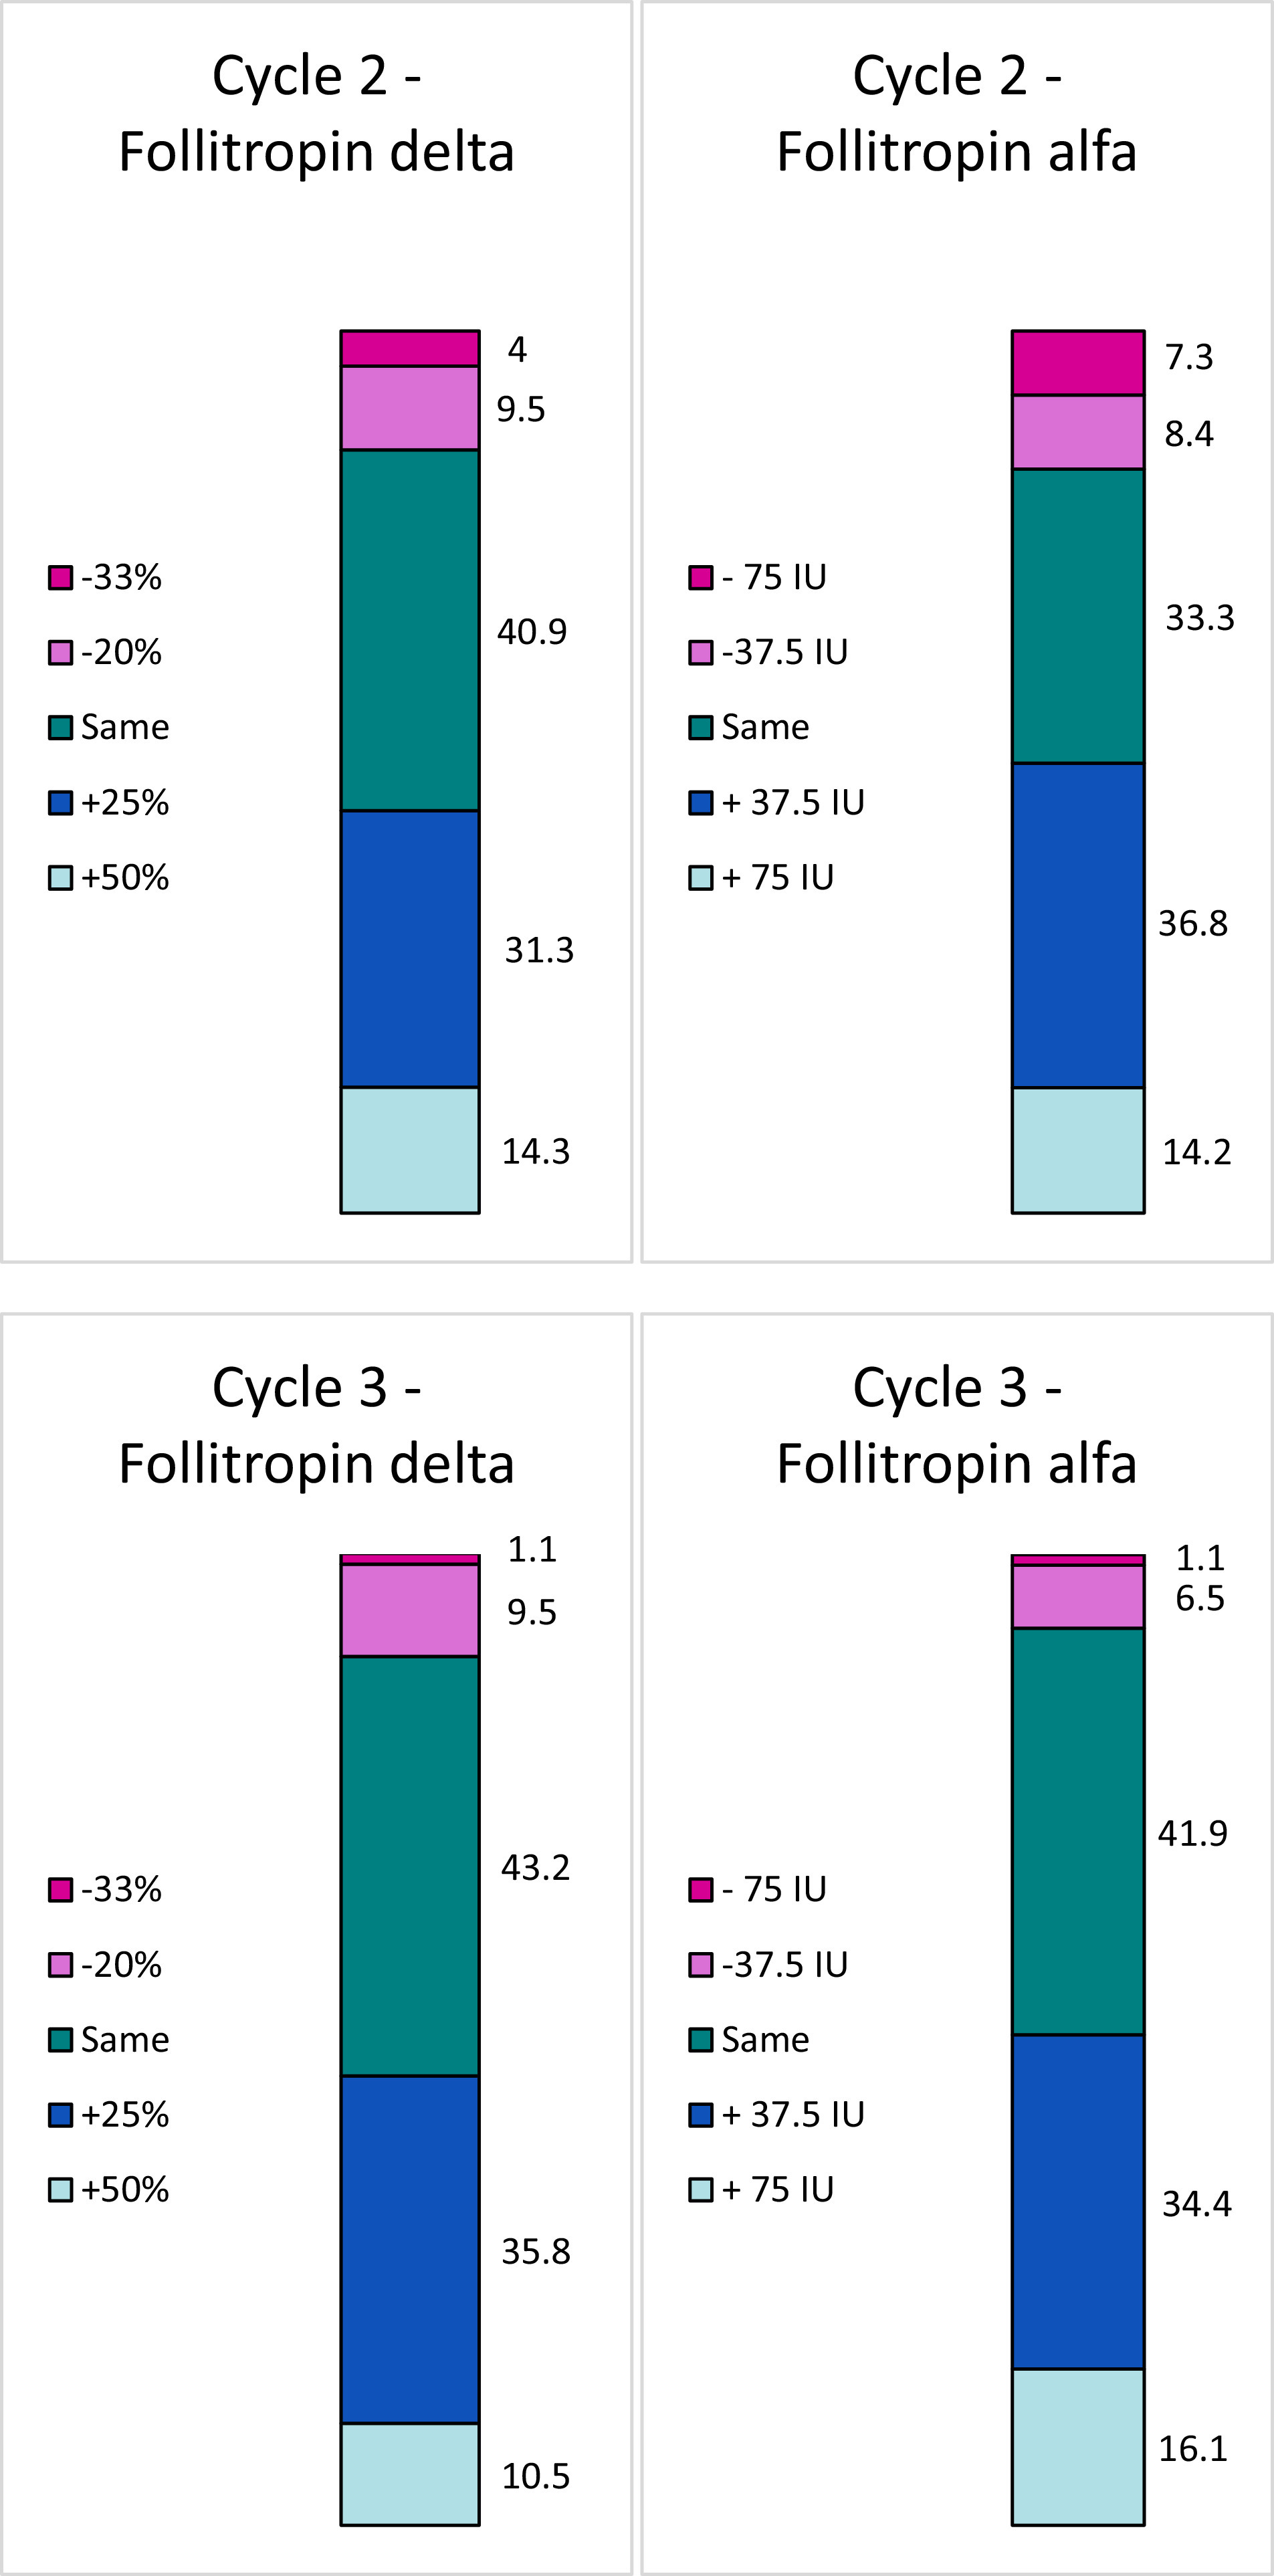 Follitropin Delta In Repeated Ovarian Stimulation For Ivf A Controlled Assessor Blind Phase 3 Safety Trial Reproductive Biomedicine Online